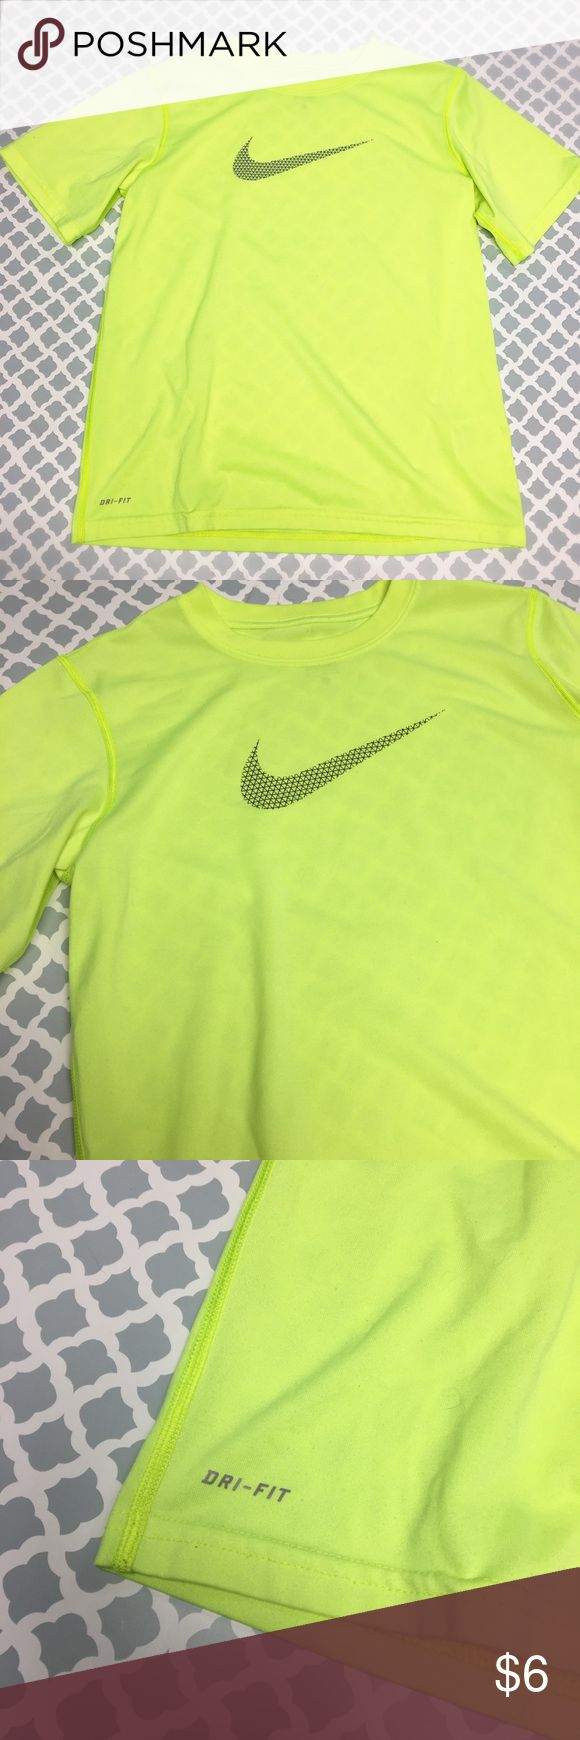 Nike Drifit T Shirt Boys size Large 🔘Description: Nike Drifit Neon yellow logo T shirt boys size large  🔘Condition: Excellent    🔘Measurements:       Pit to Pitt -        Shoulder to Hem -                 Inventory:    ⭐️ 15% Off All Bundles! 🛍    💞Thanks for stopping by! 😘 Nike Shirts & Tops Tees - Short Sleeve